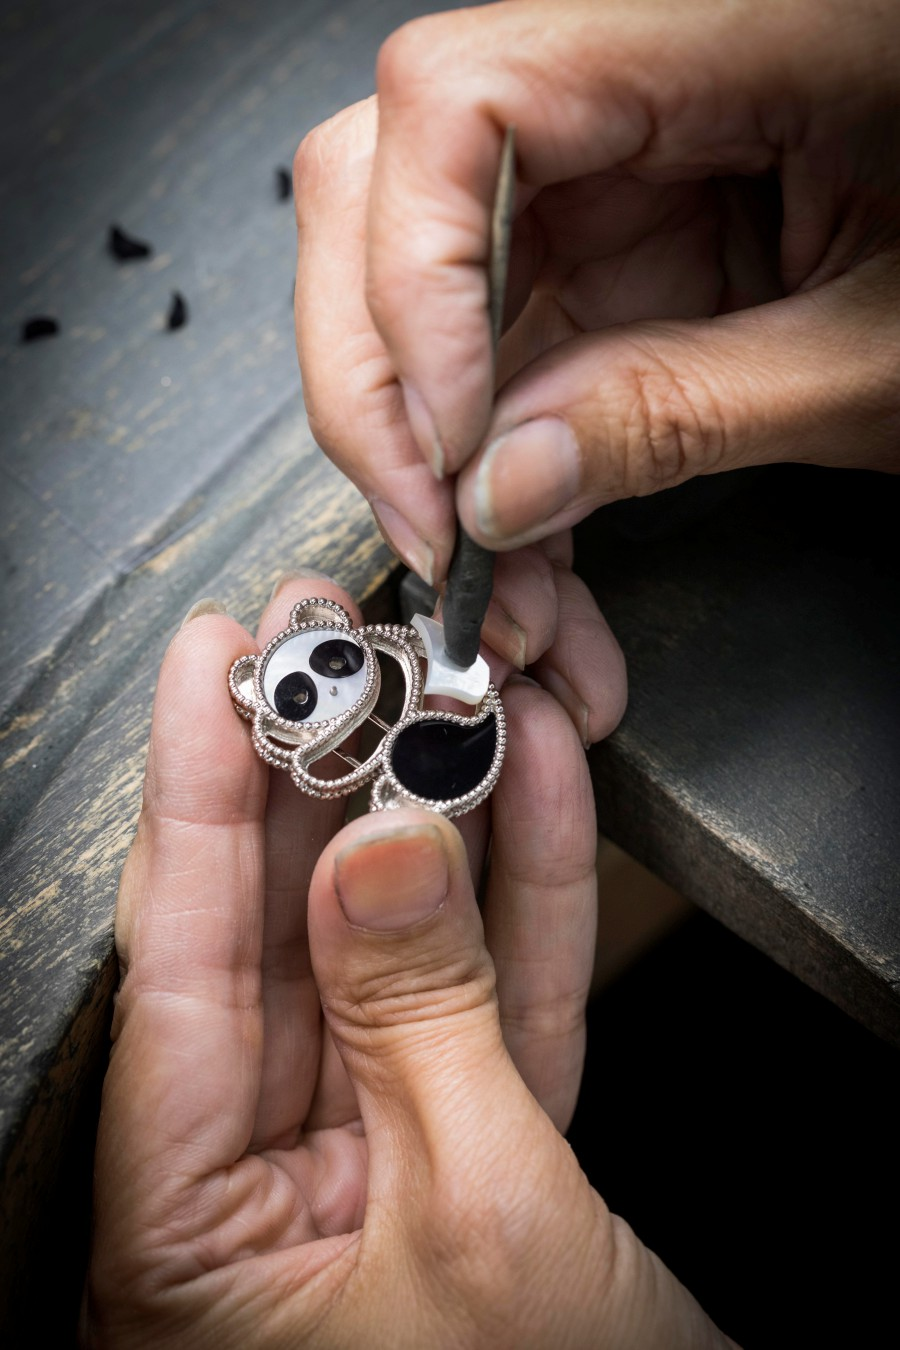 A Van Cleef & Arpels artisan fixing the mother-of-pearl onto the Panda clip.